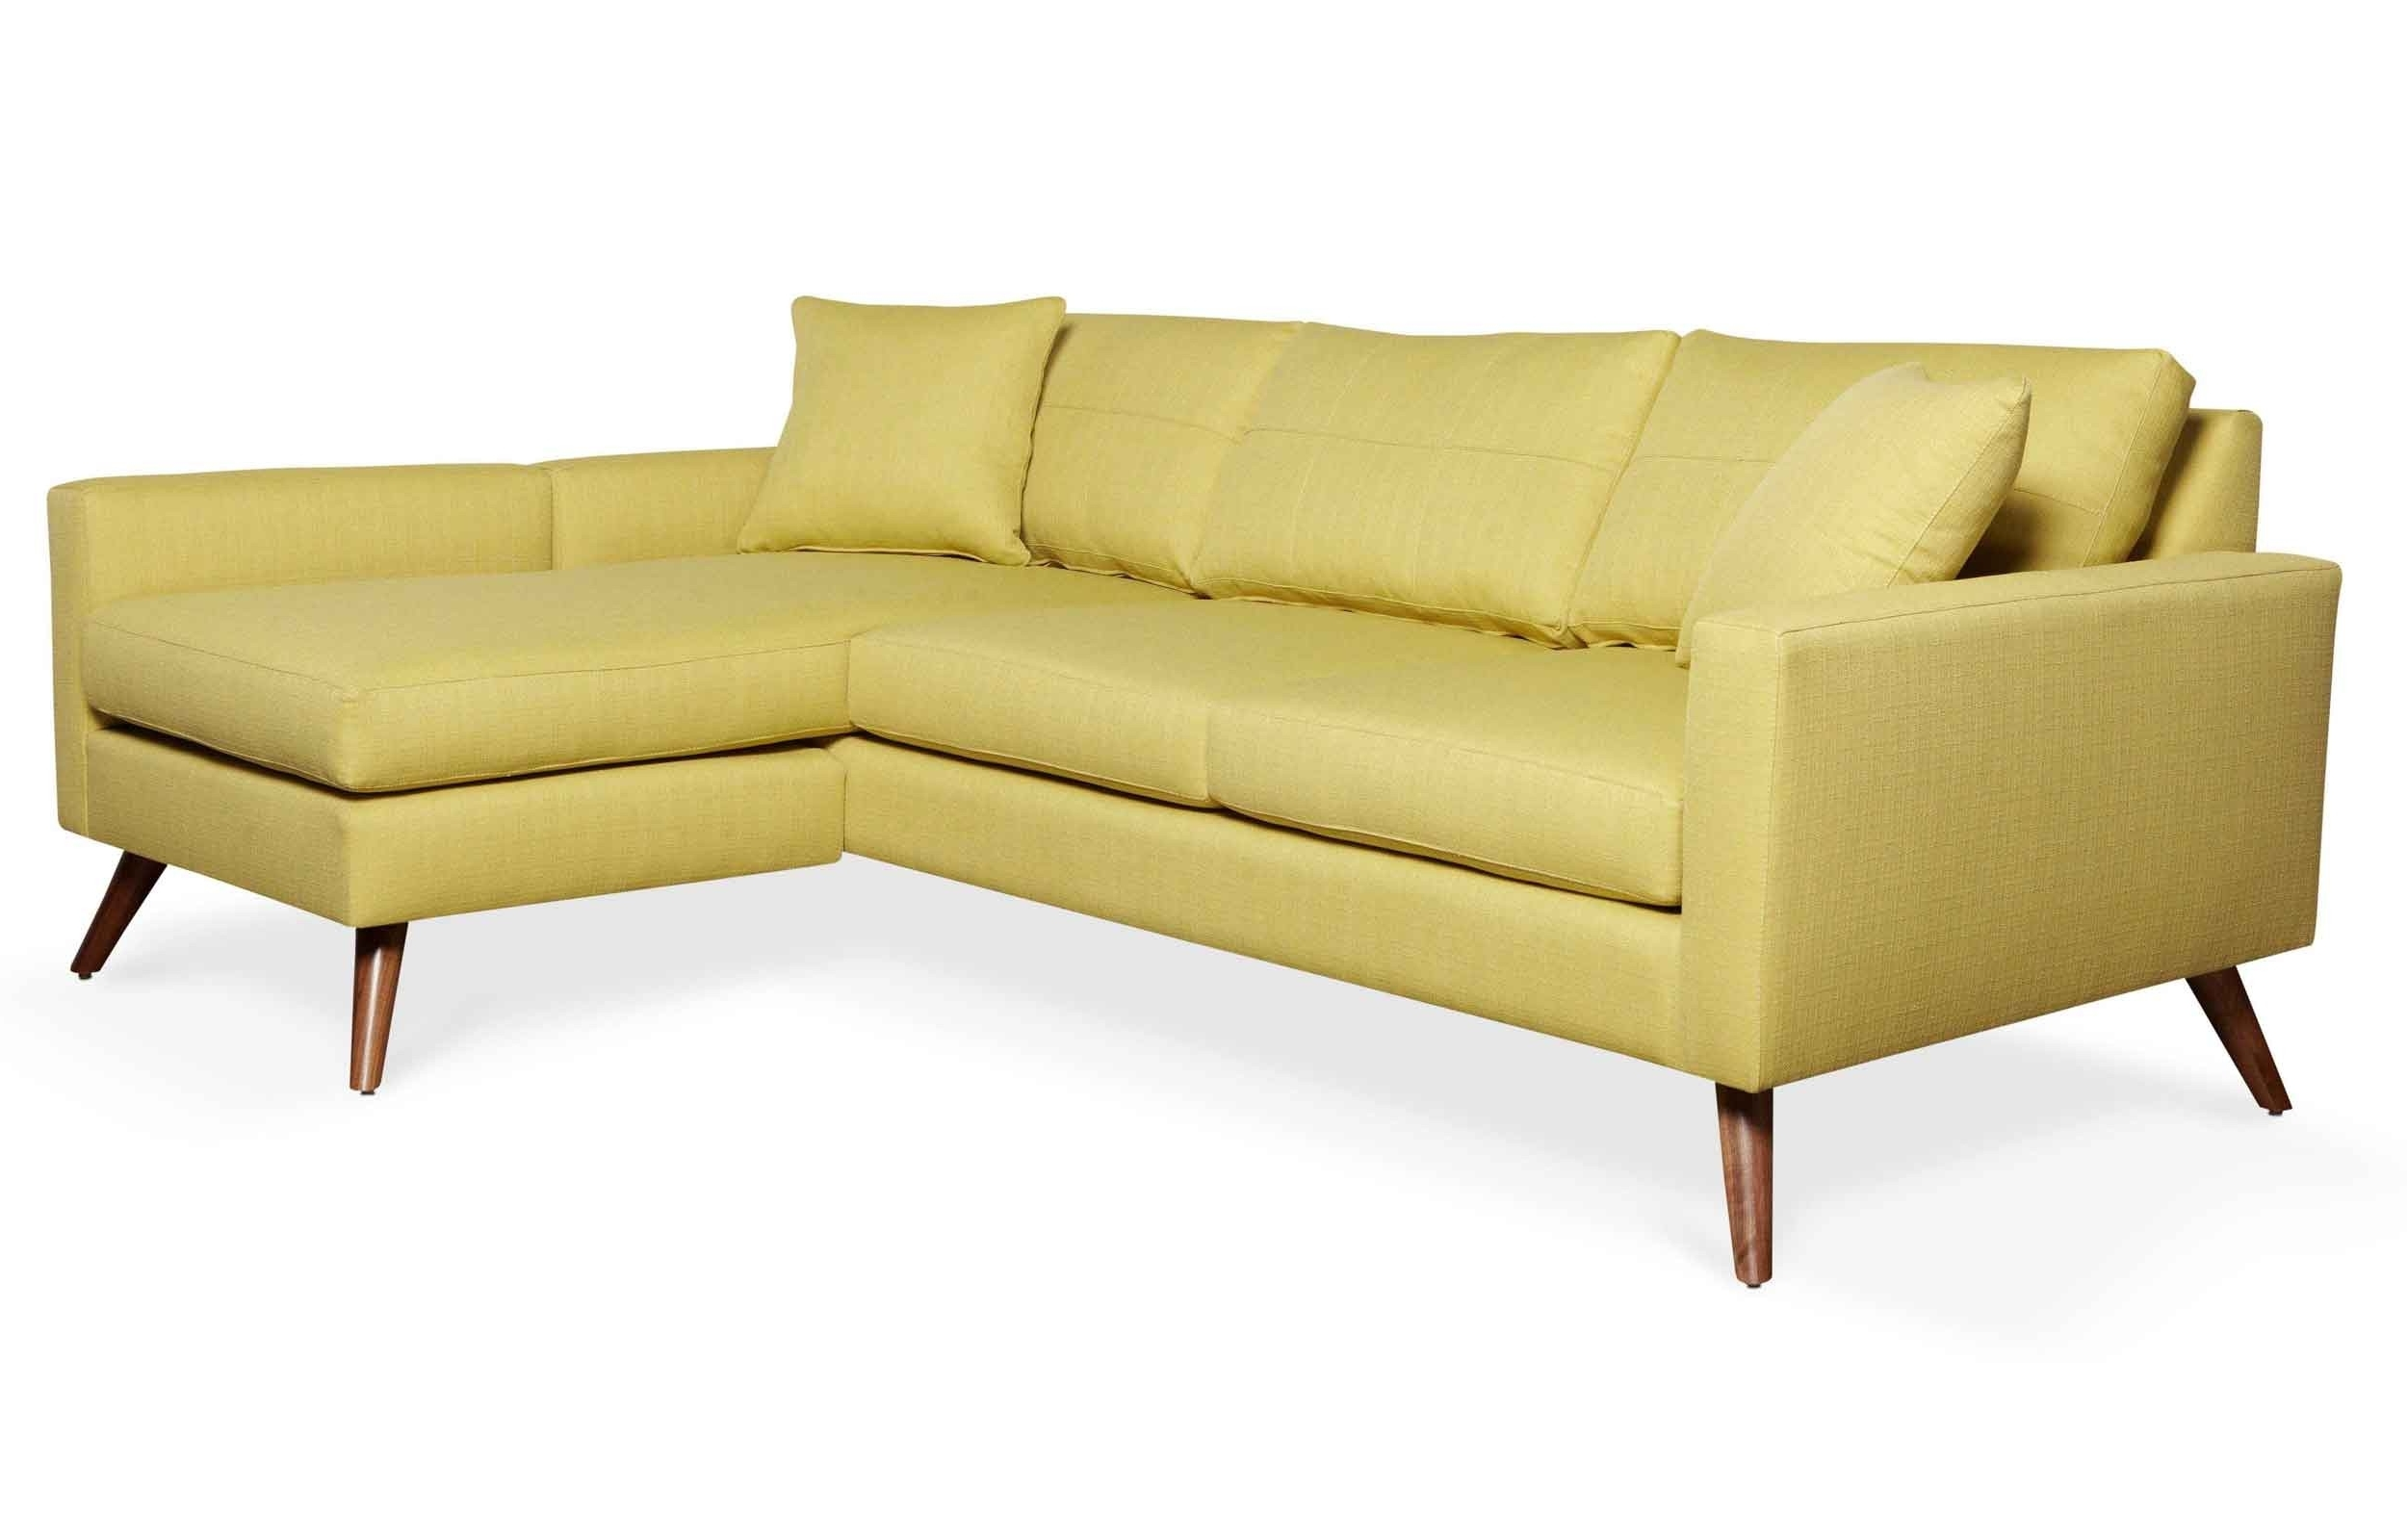 Viesso Within Apartment Sofas (Gallery 1 of 20)